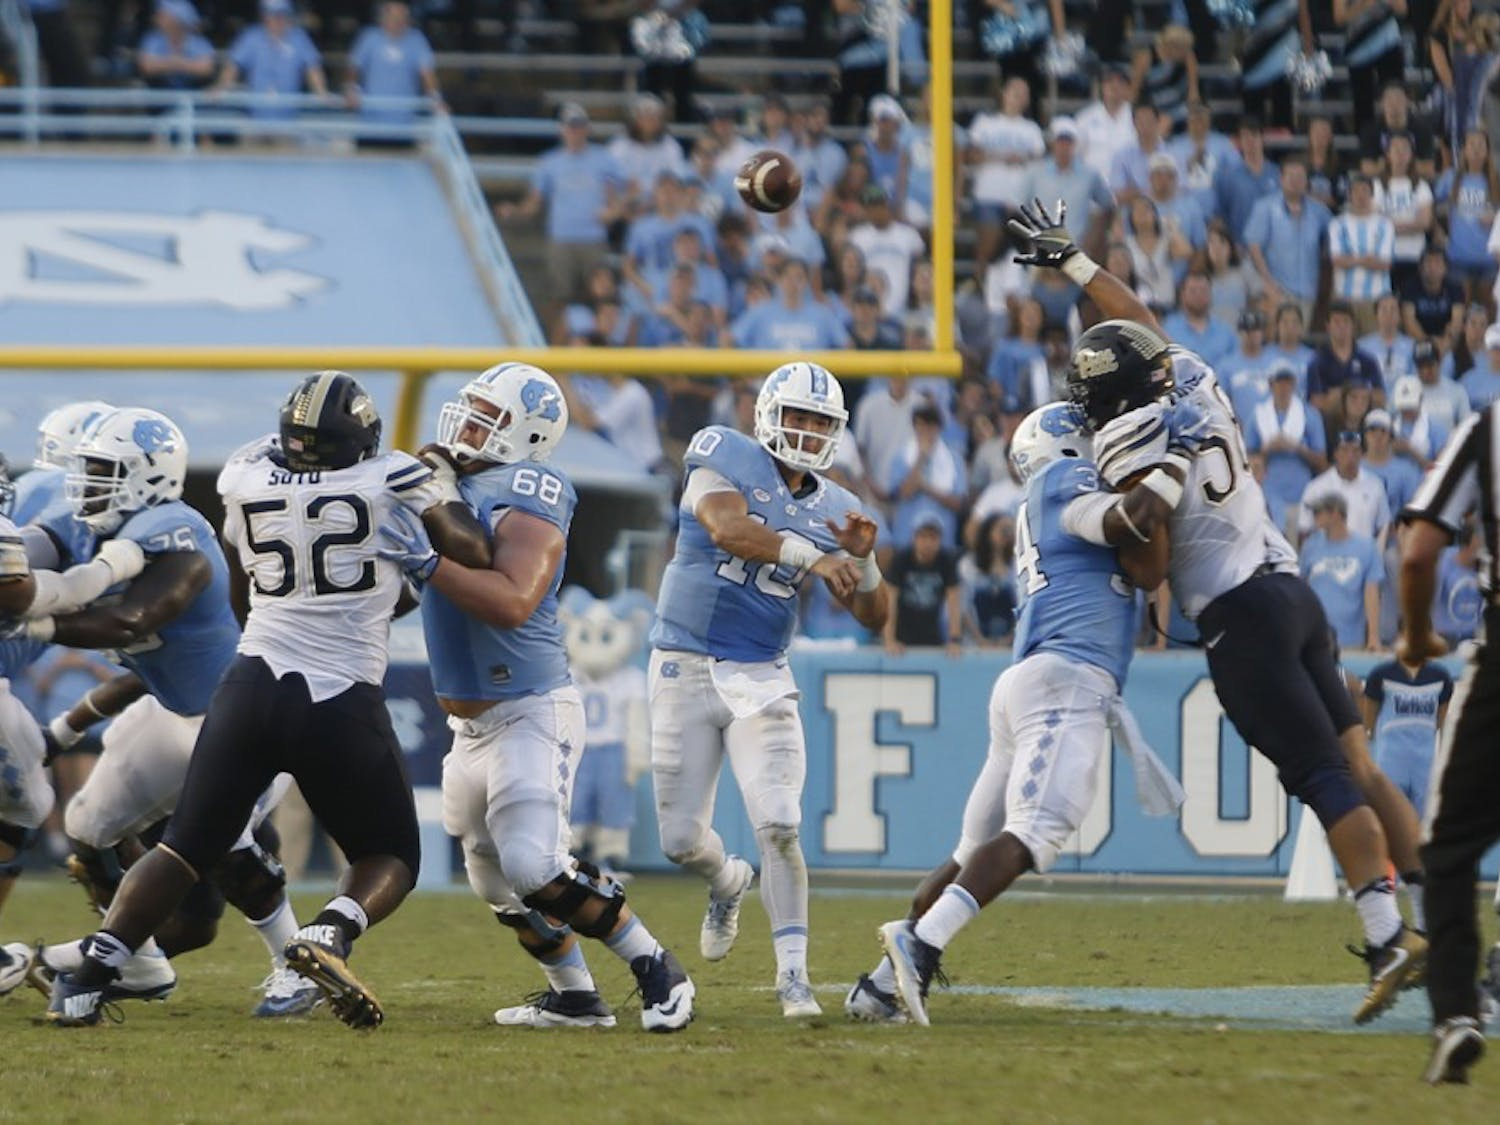 UNC quarterback Mitch Trubisky throws a pass against Pittsburgh on September 24th.